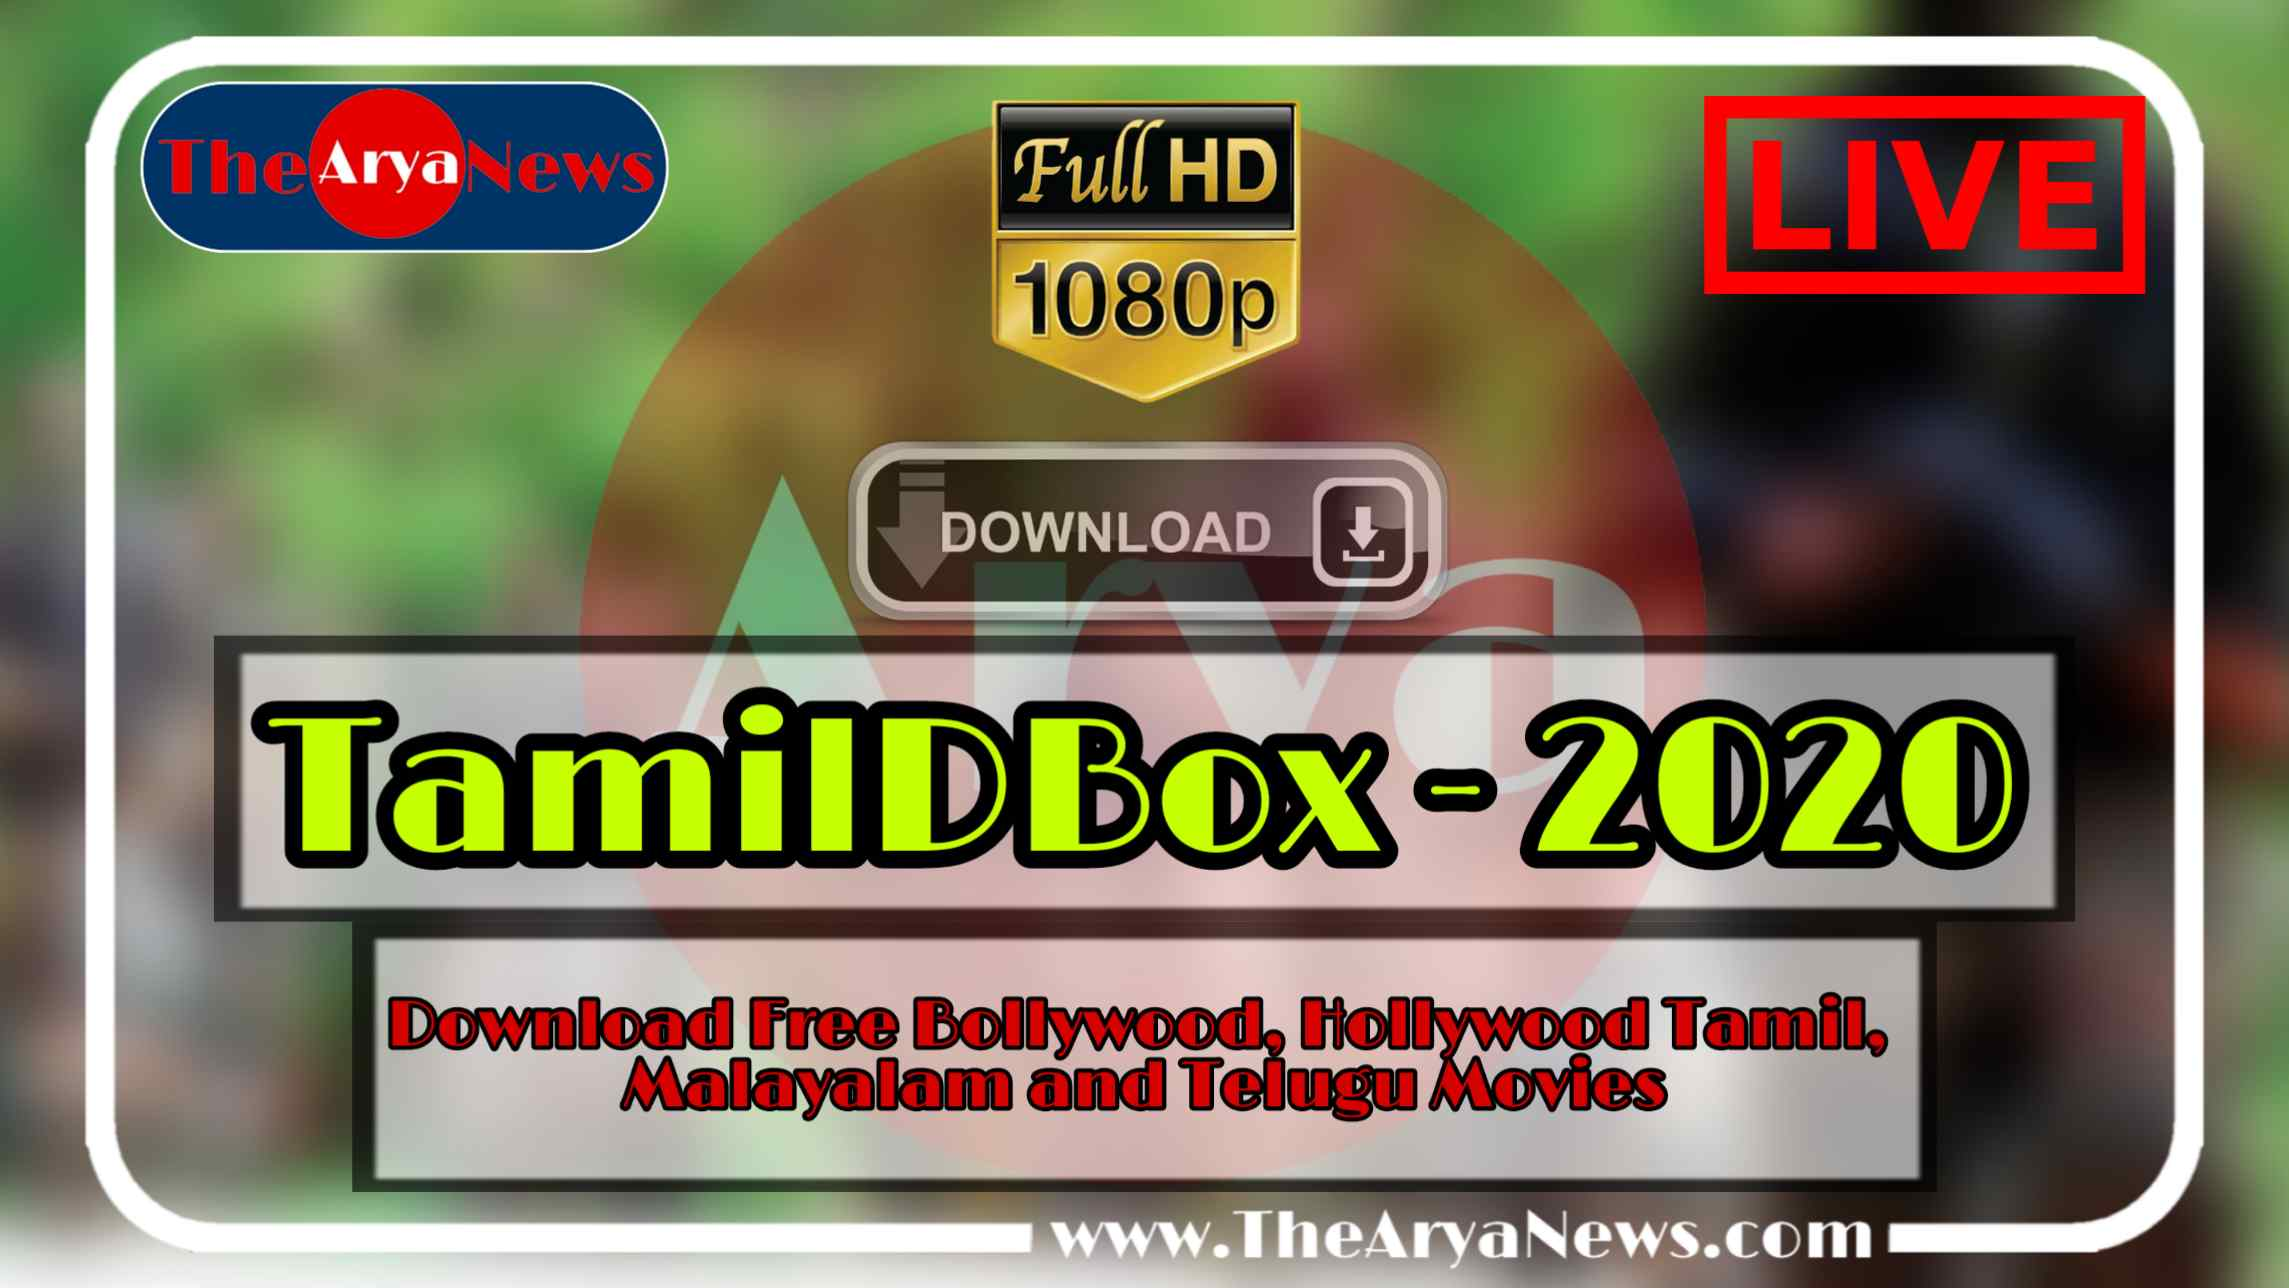 TamilDbox 2020 » Download Free Bollywood, Hollywood Dubbed Movies